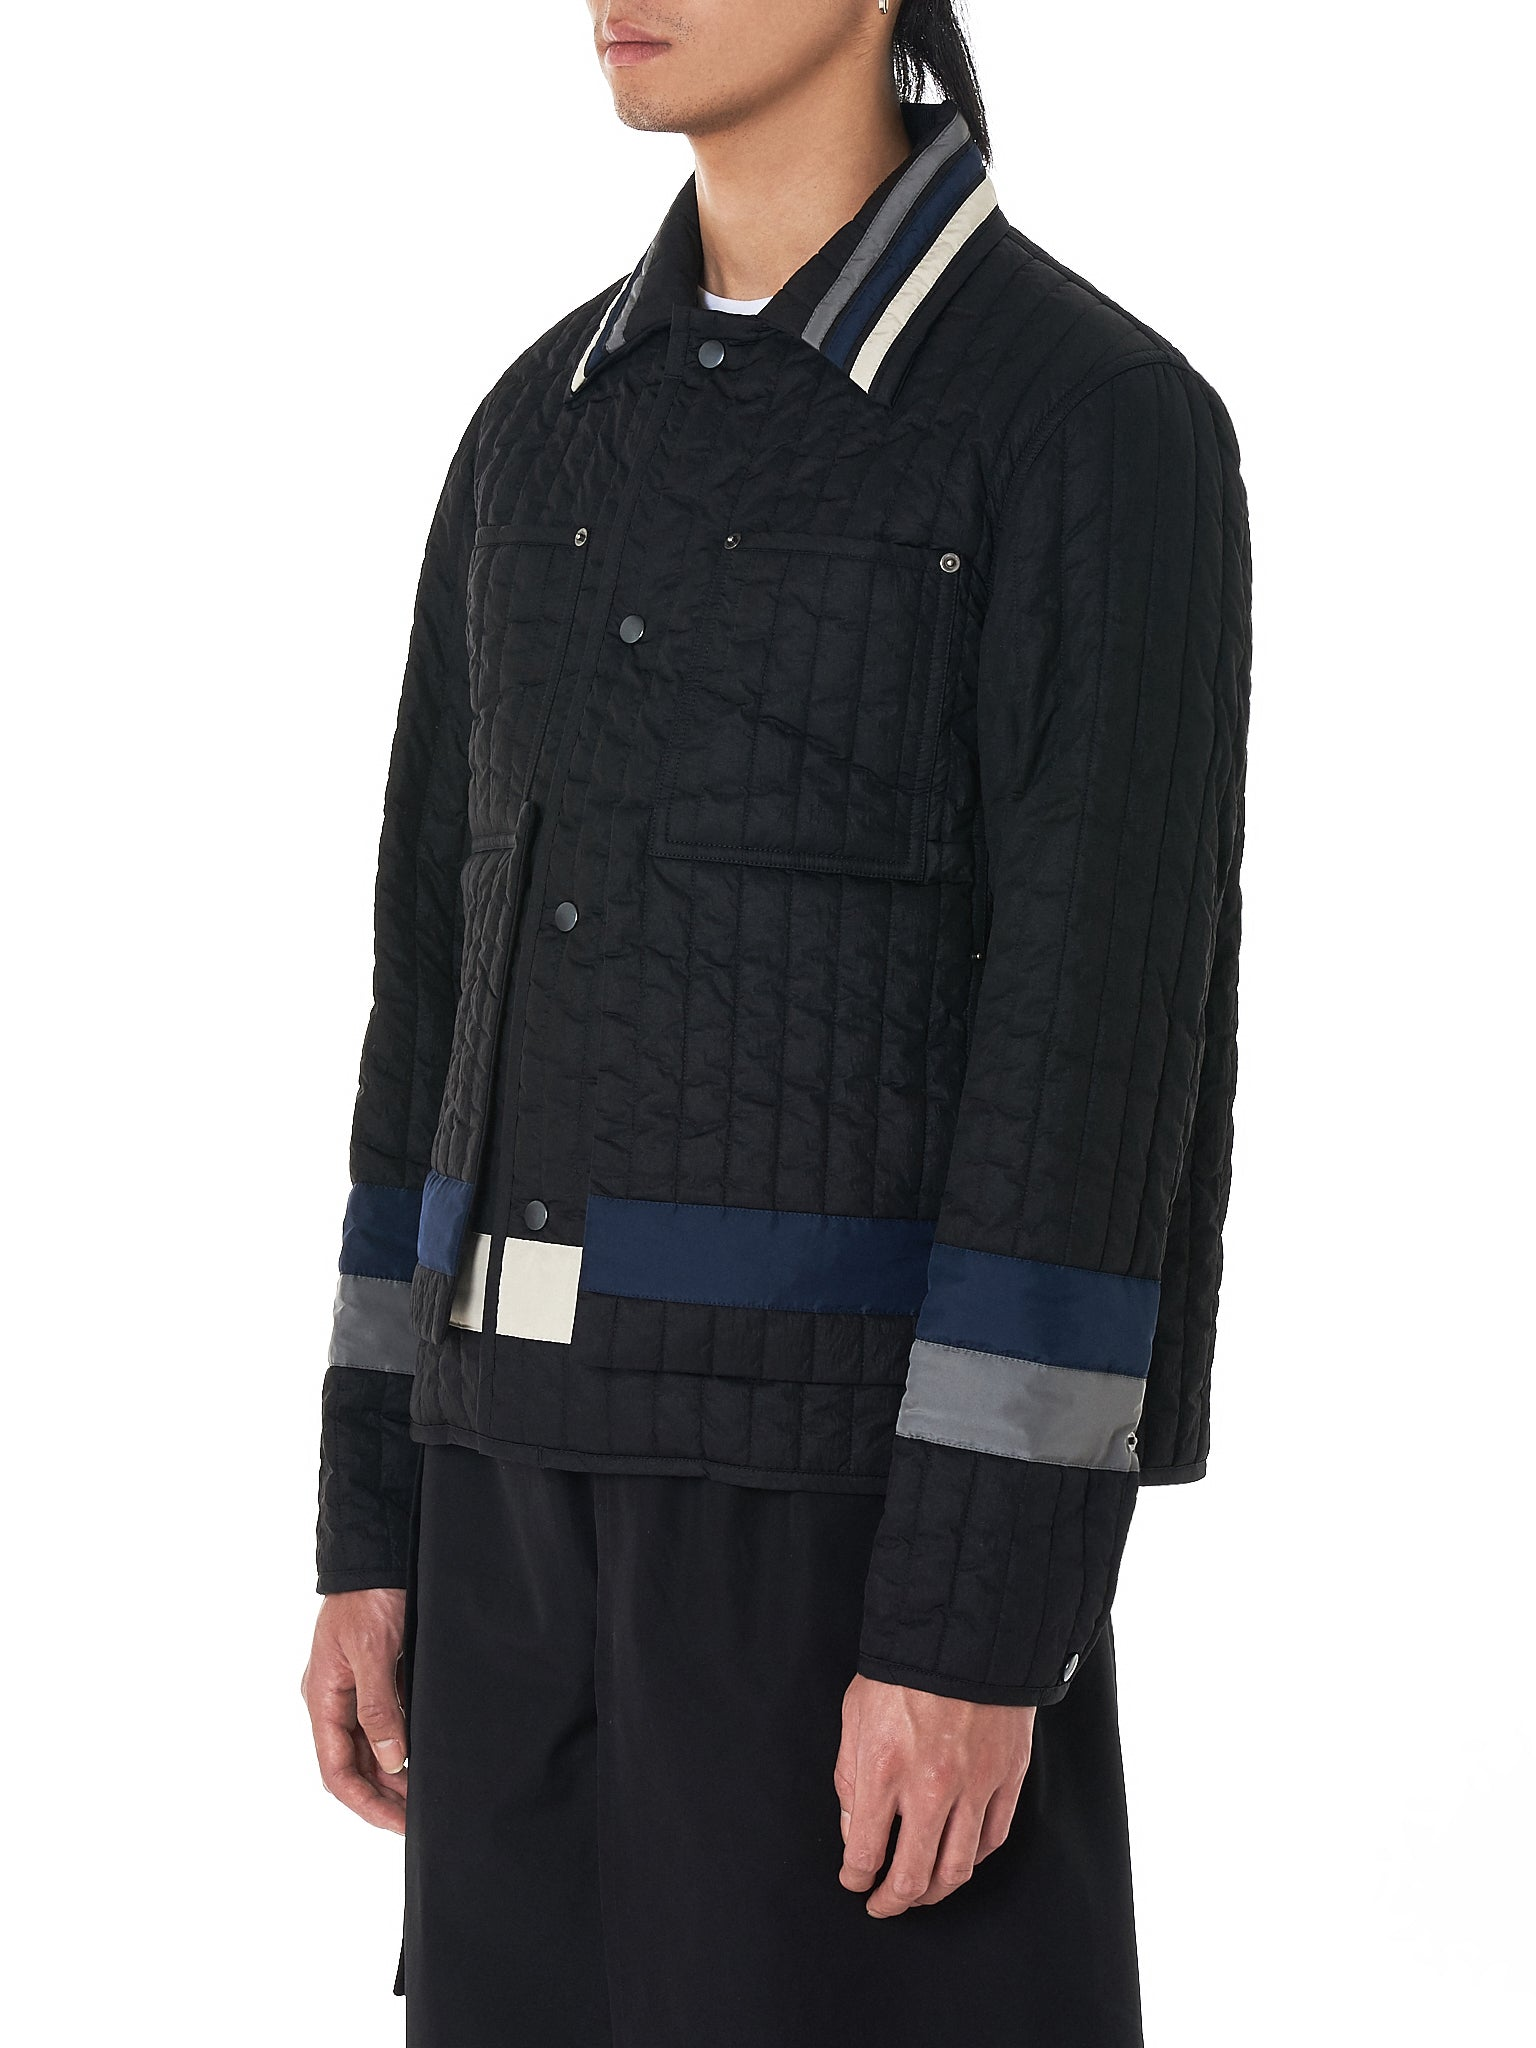 Craig Green Work Jacket - Hlorenzo Side